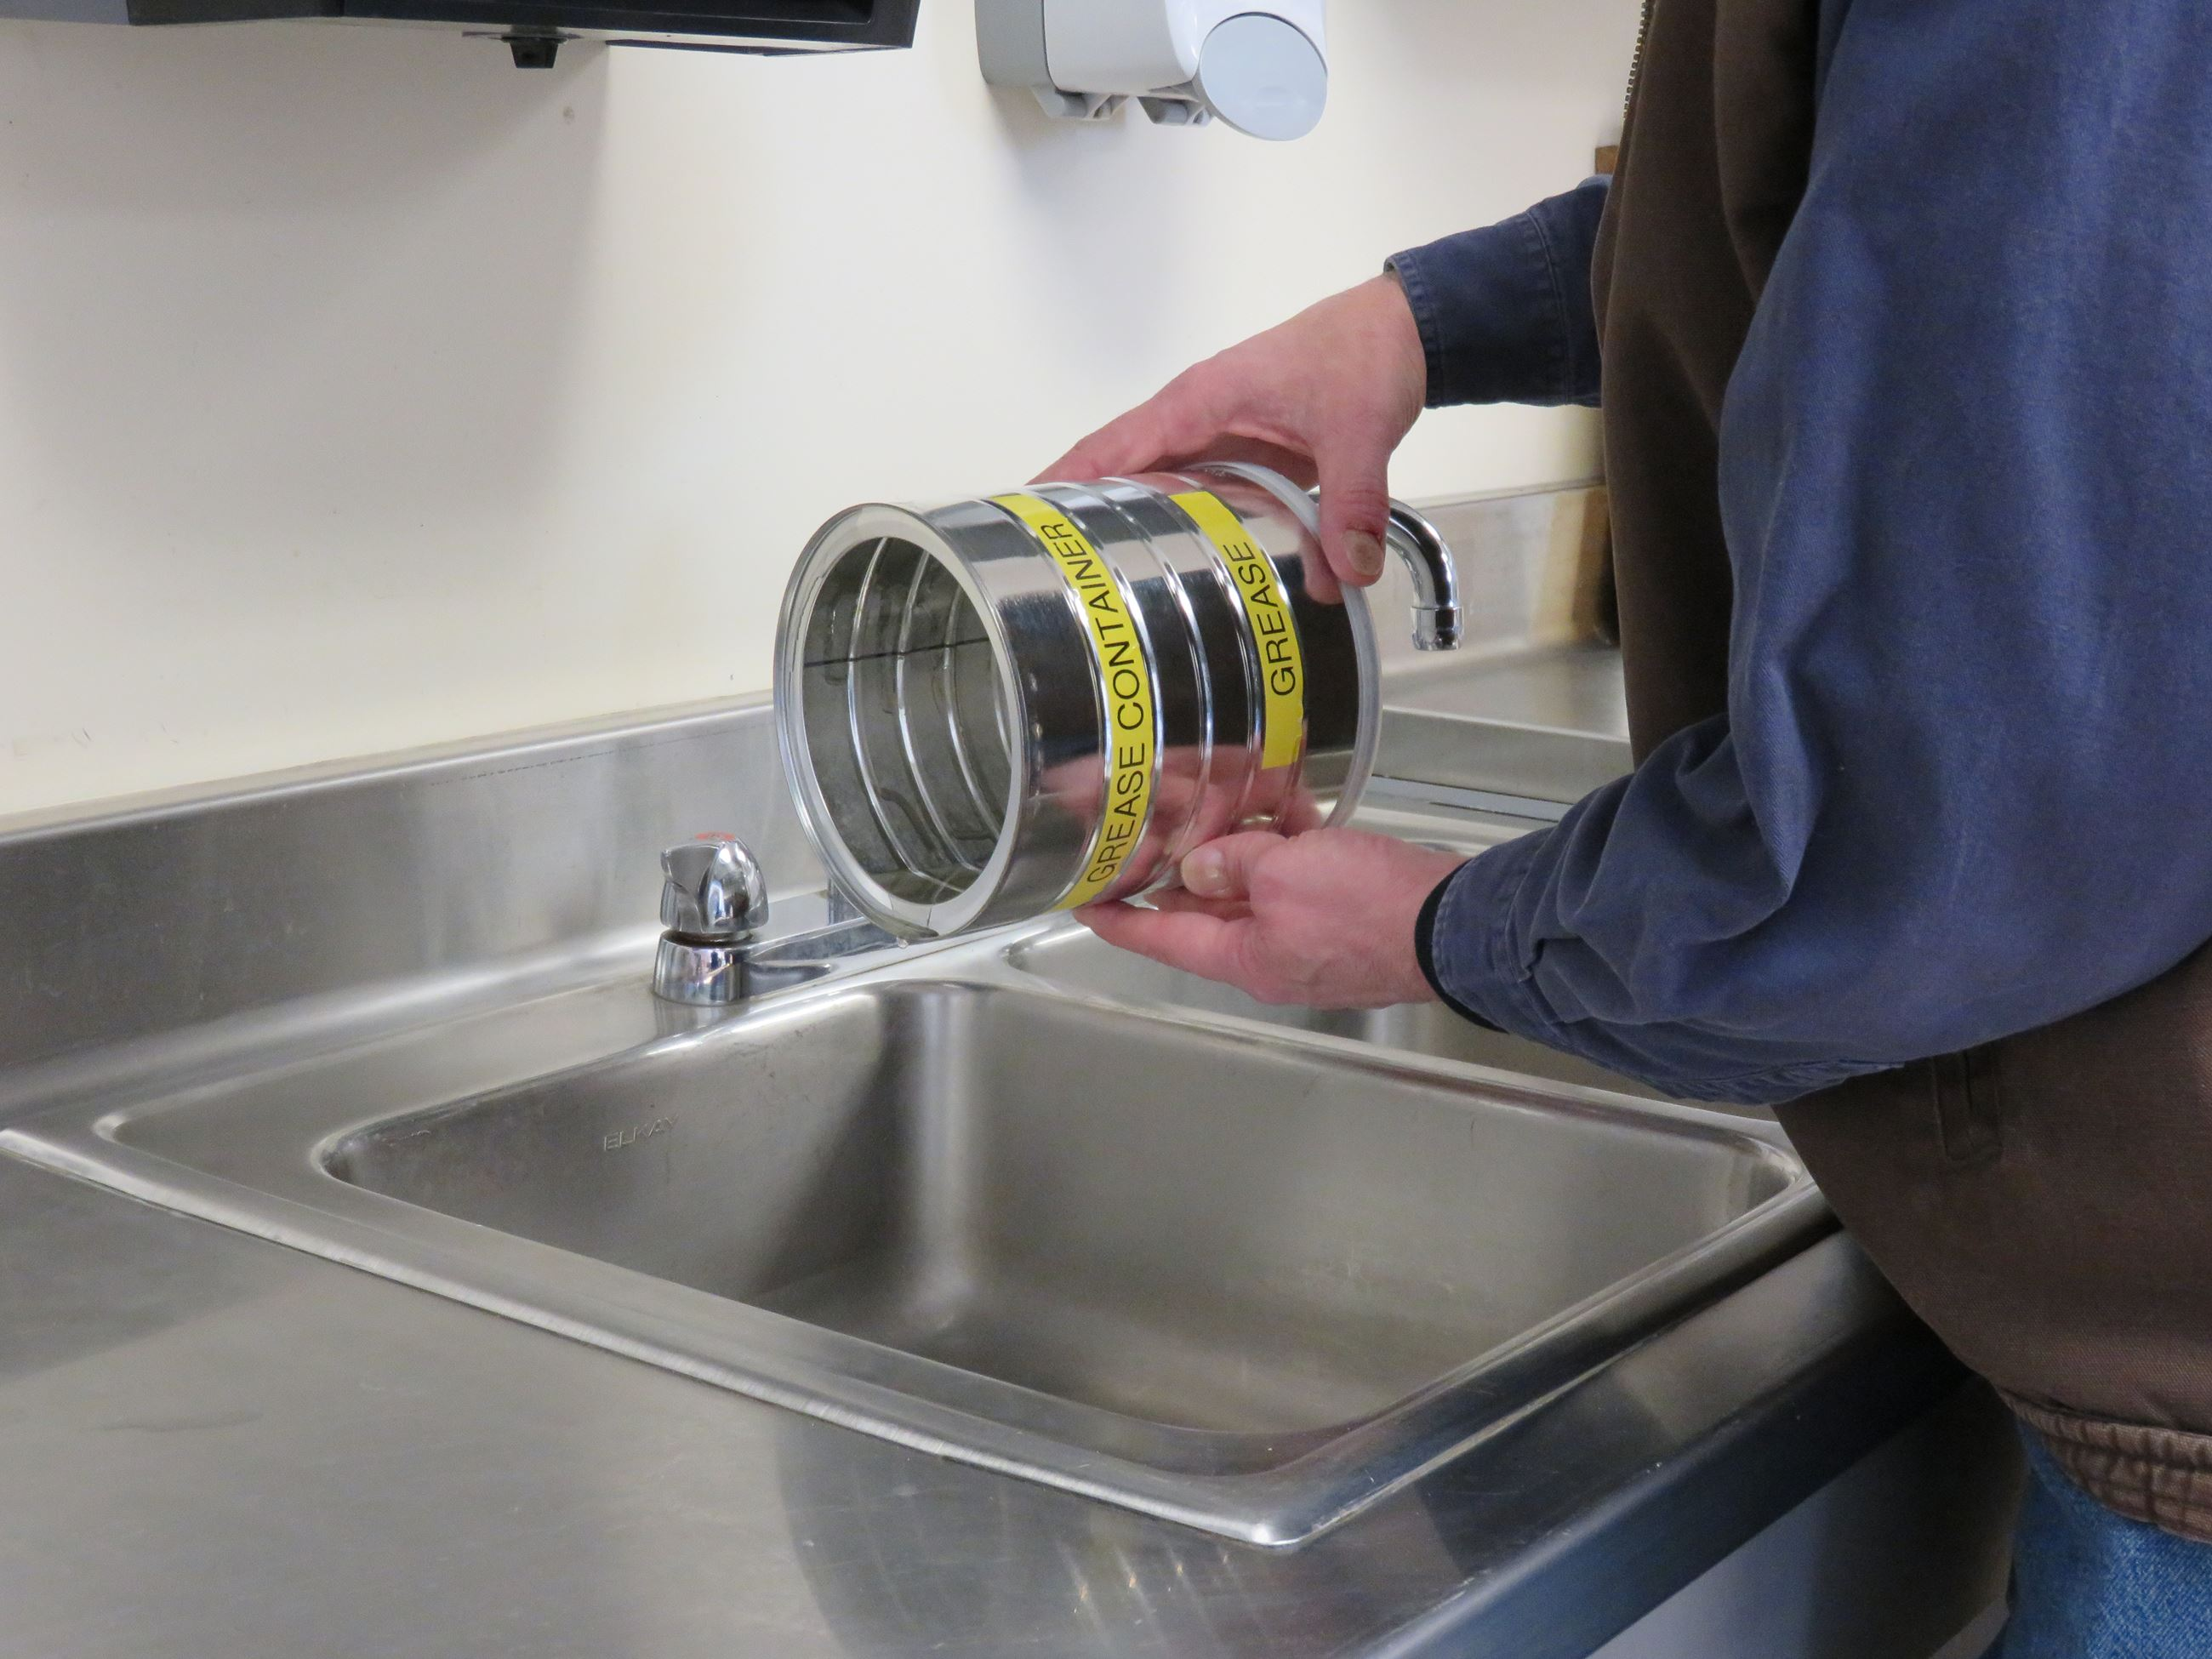 Person pouring grease from a coffee can-size grease collection container into the sink.